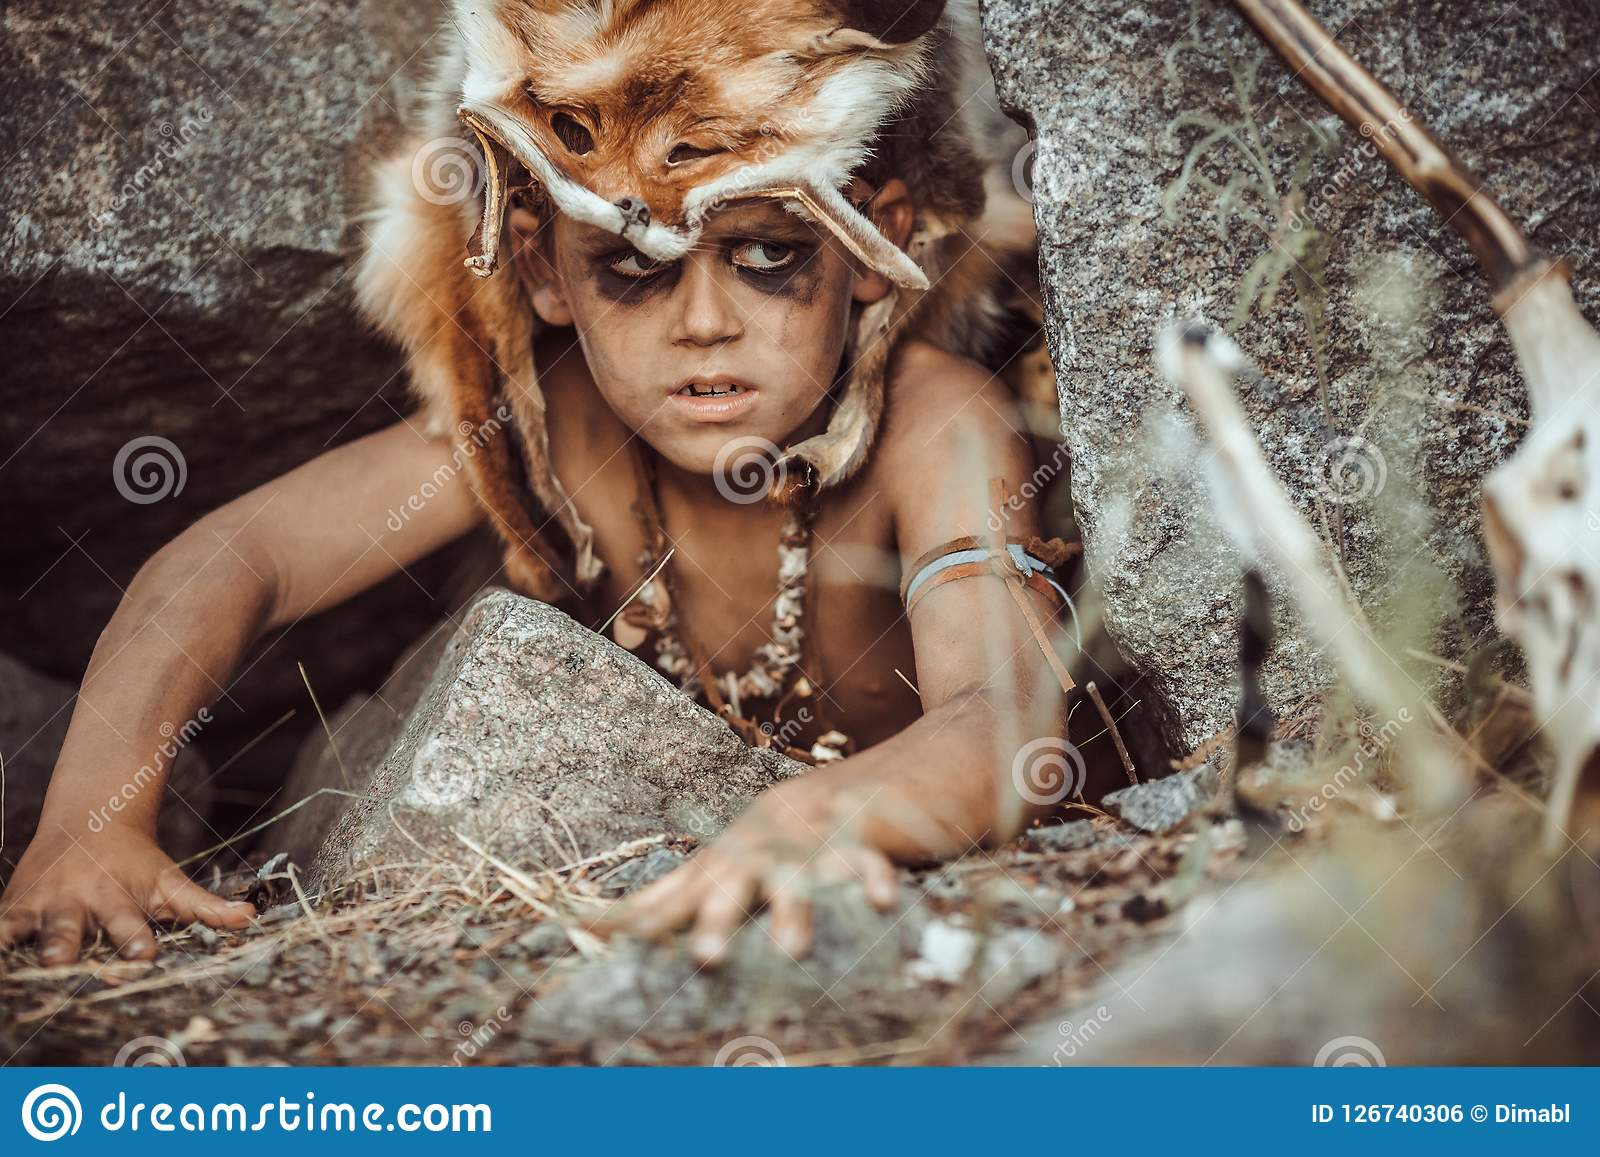 Caveman Manly Boy Hunting Outdoors Ancient Warrior Portrait Stock